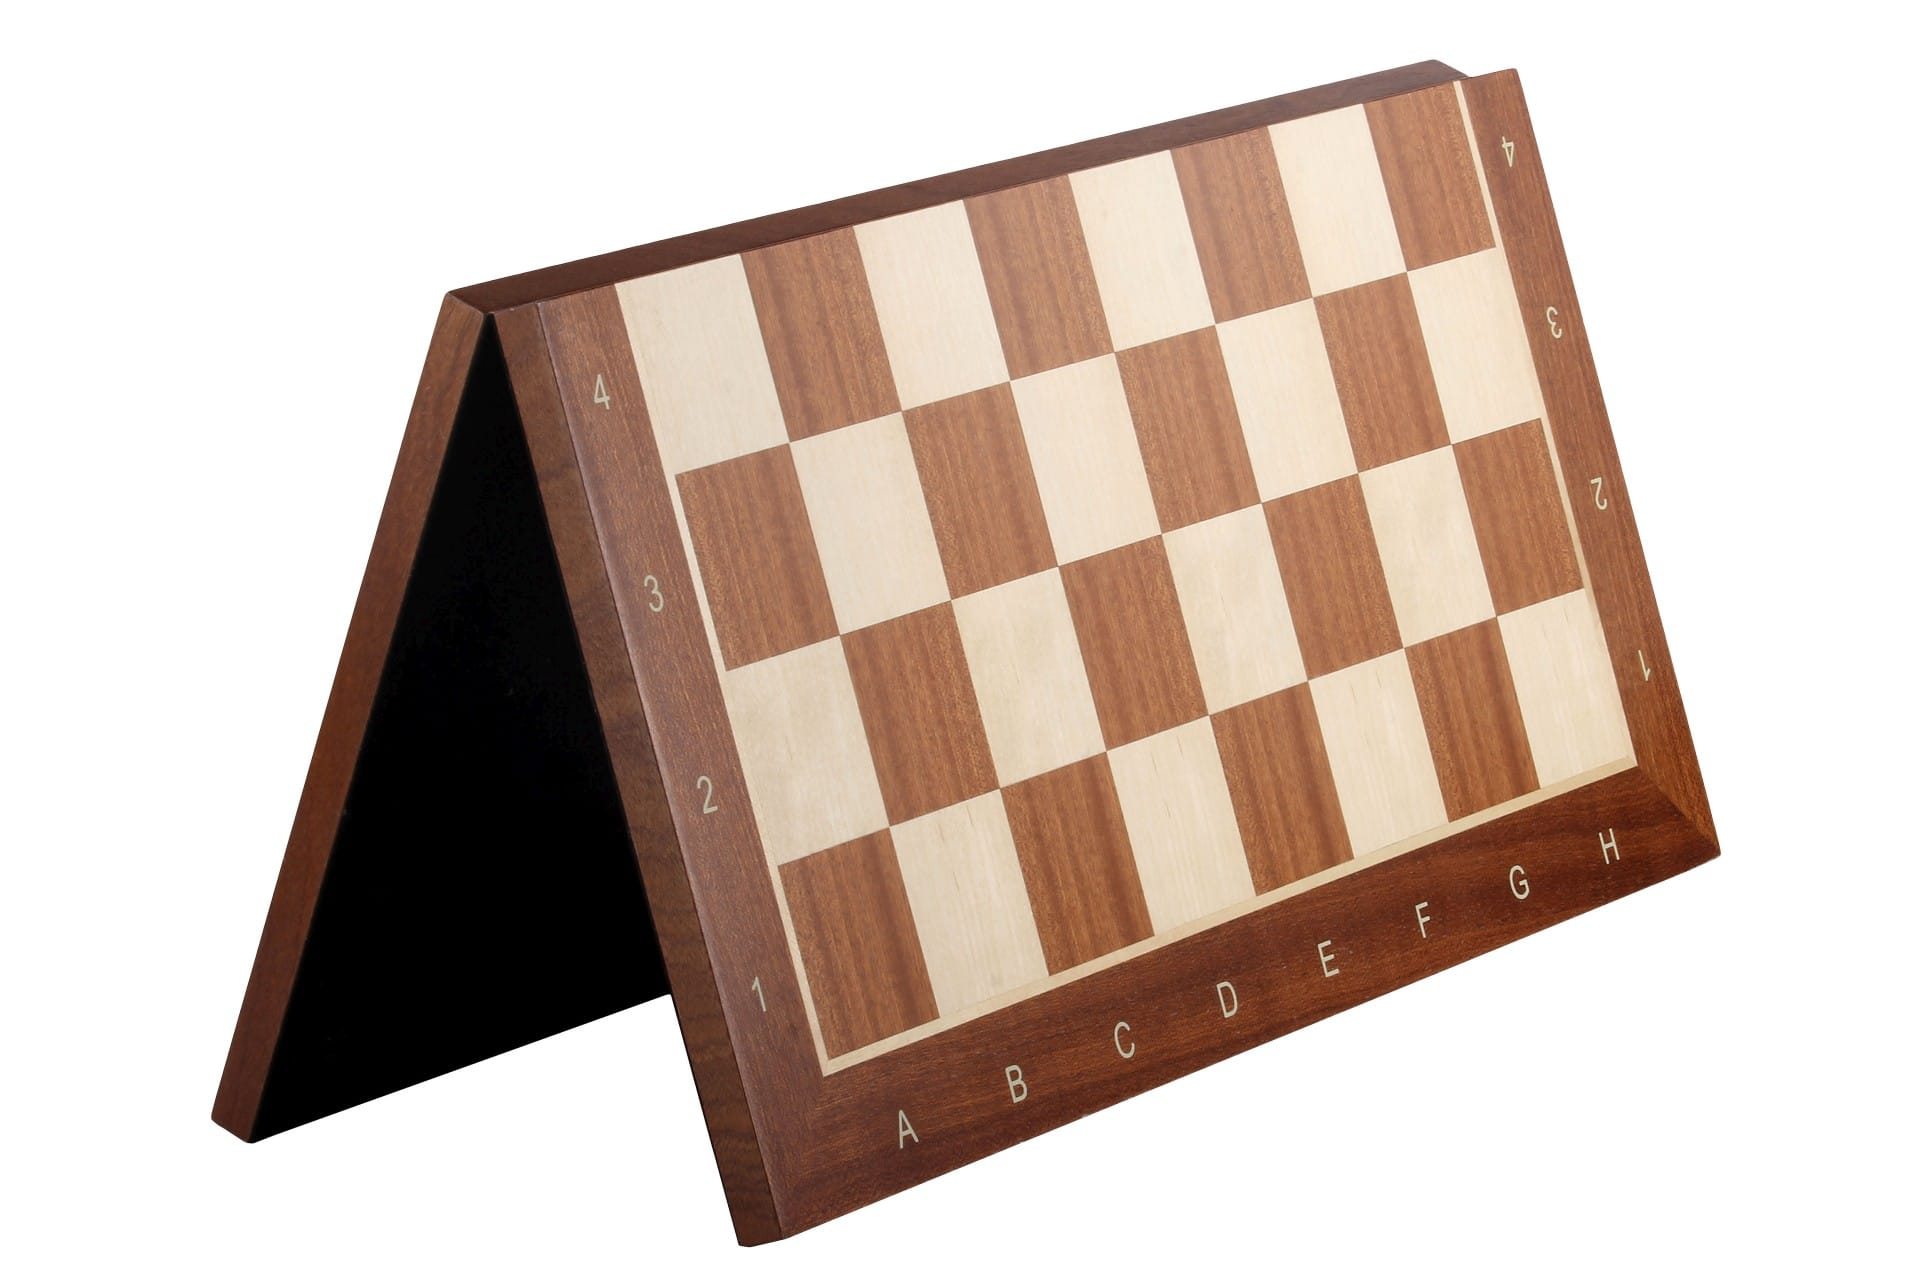 folding chess board sapele